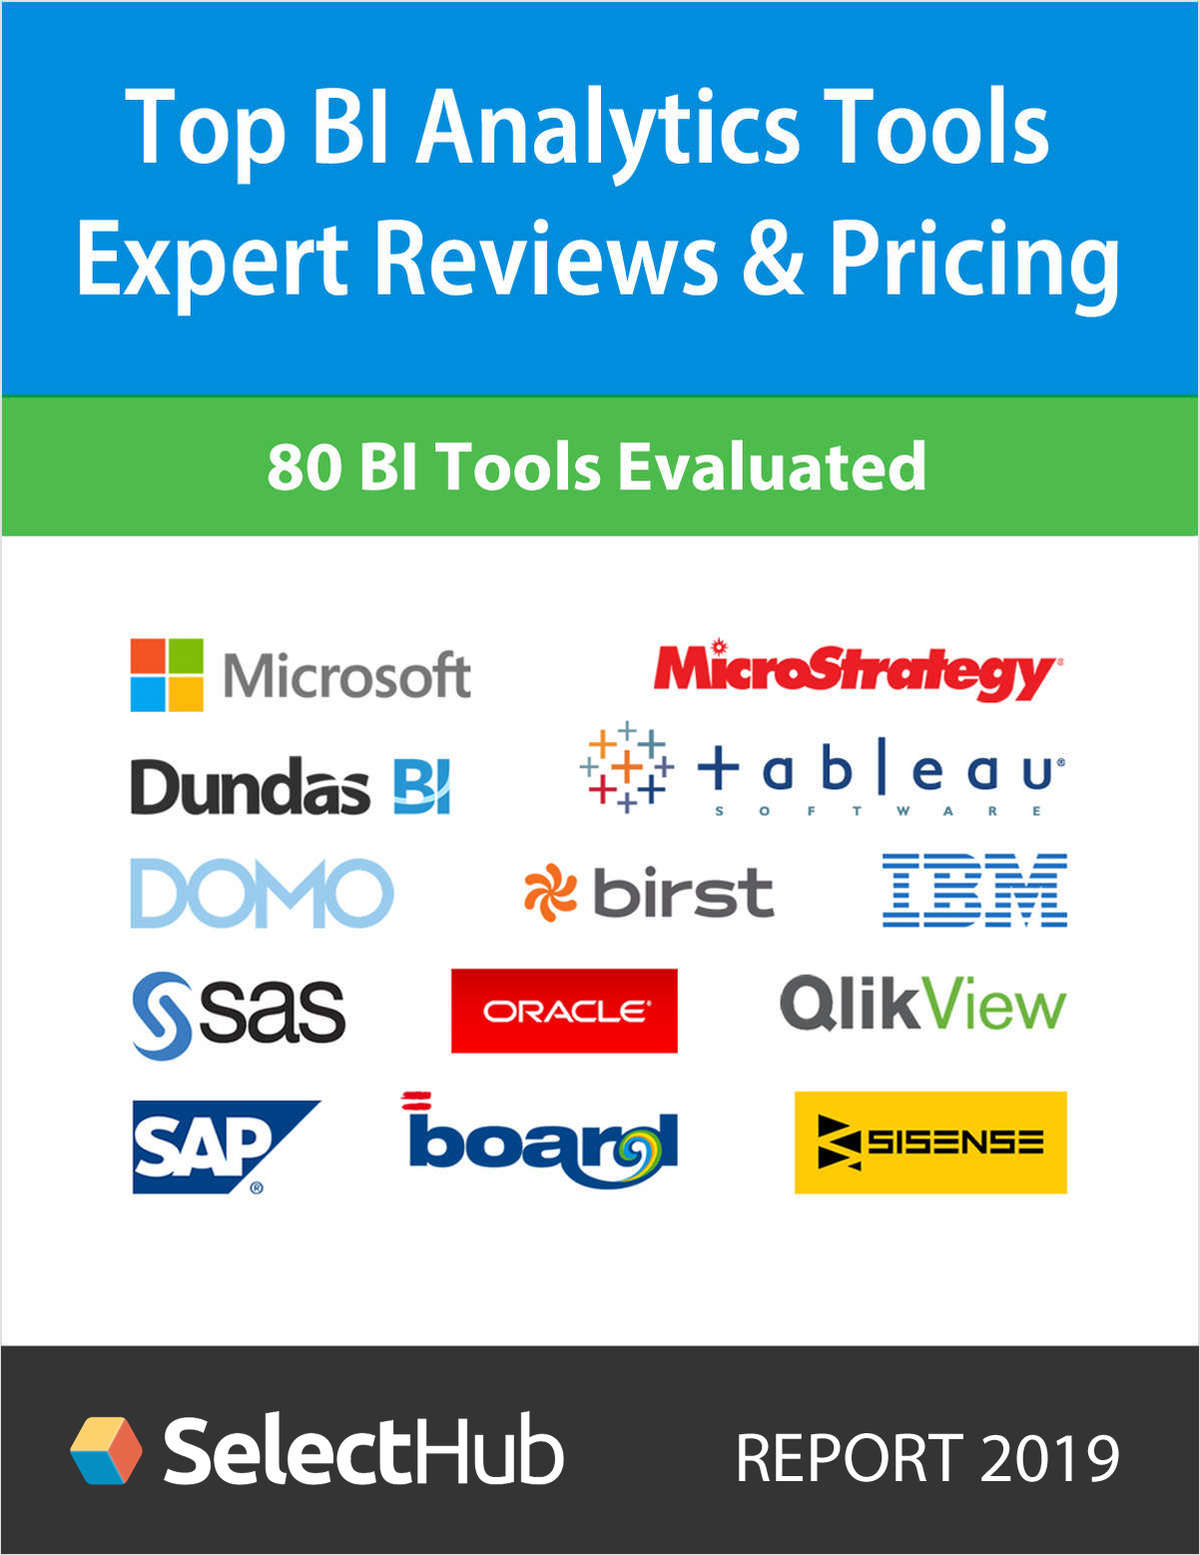 Top BI Analytics Tools 2019--Expert Reviews and Pricing